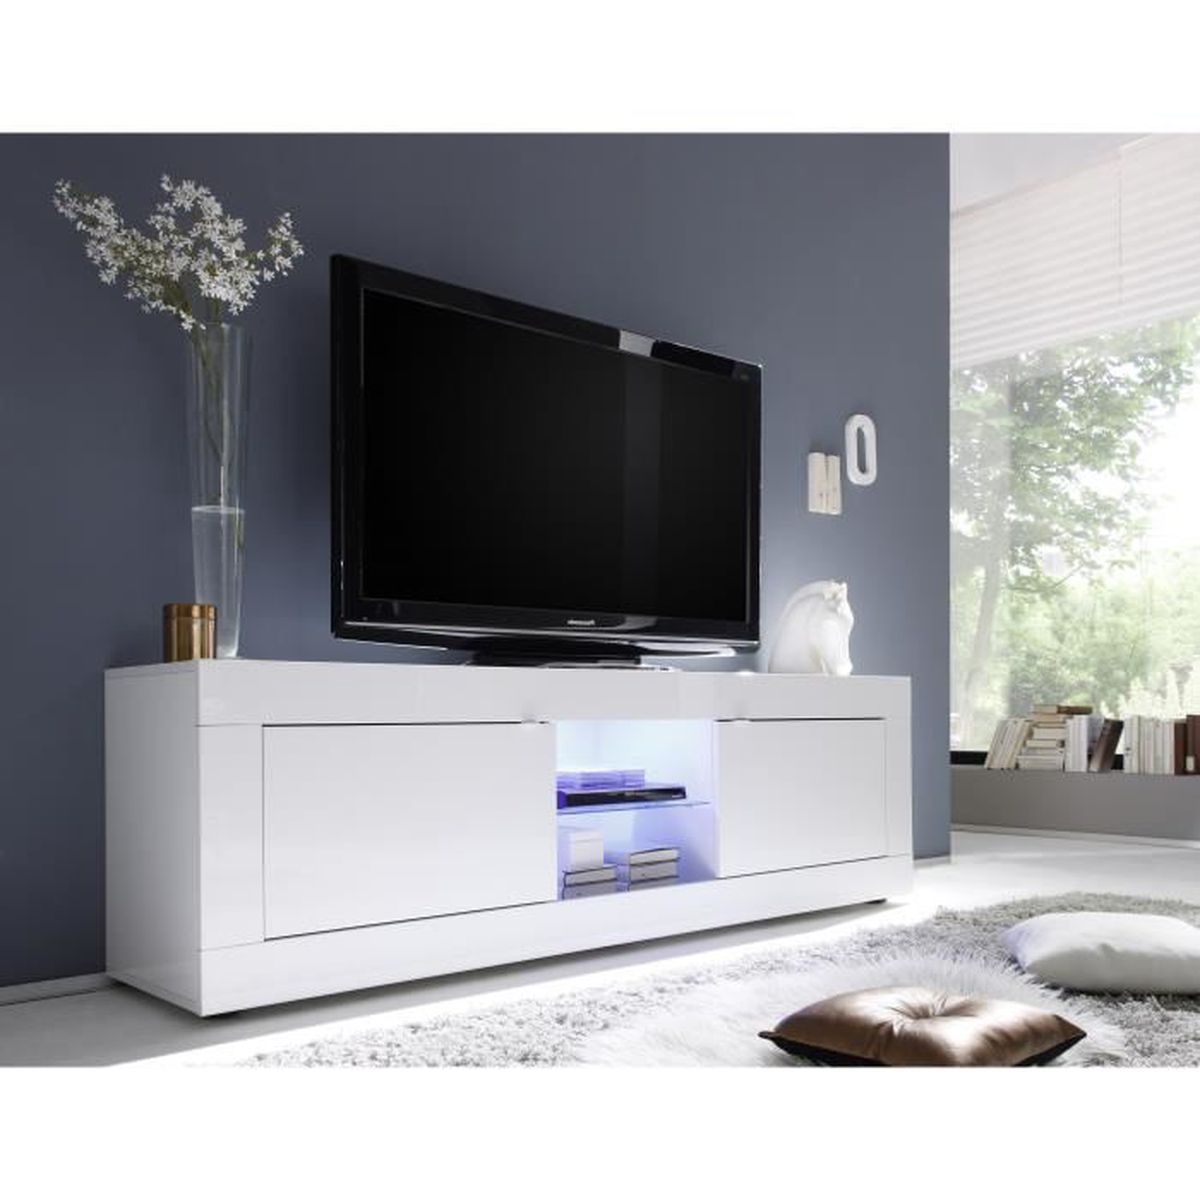 grand meuble tv moderne laque meuble house blanc achat vente meuble tv grand meuble tv. Black Bedroom Furniture Sets. Home Design Ideas